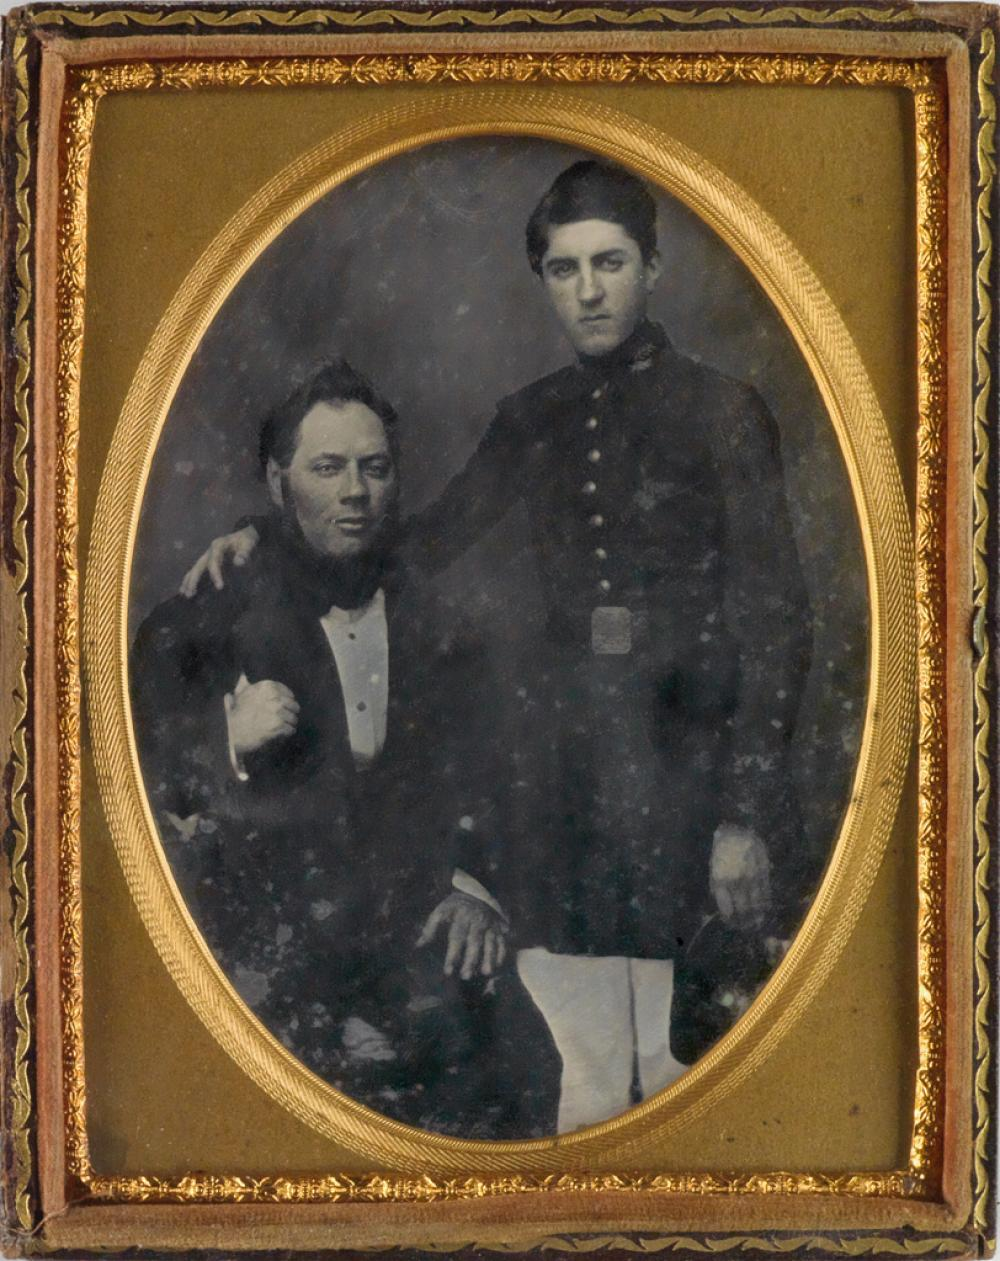 (CIVIL WAR) Pair of half-plates, comprising a daguerreotype of a soldier (his belt buckle gilted) posing with his father, and an ambrot